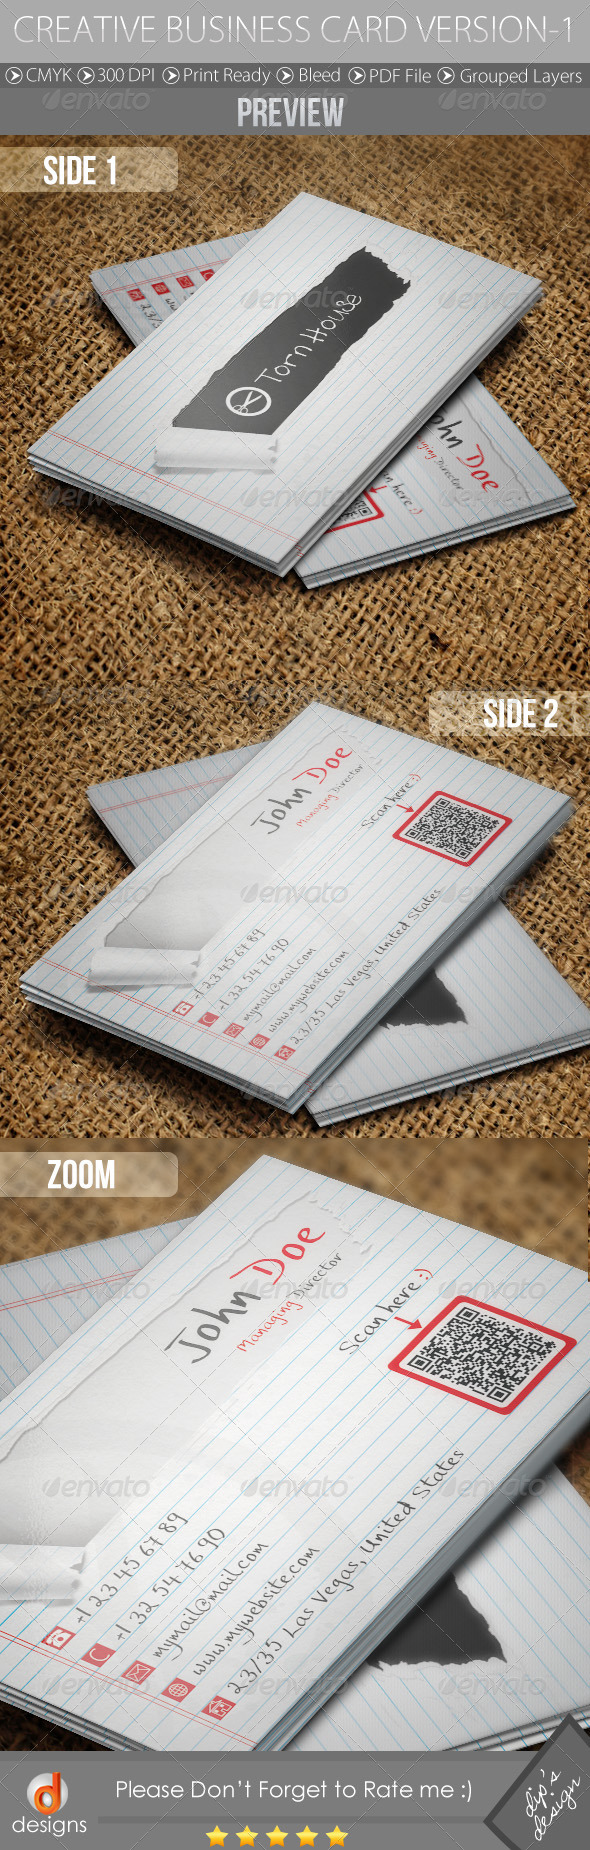 Creative Business Card Version-1 - Real Objects Business Cards